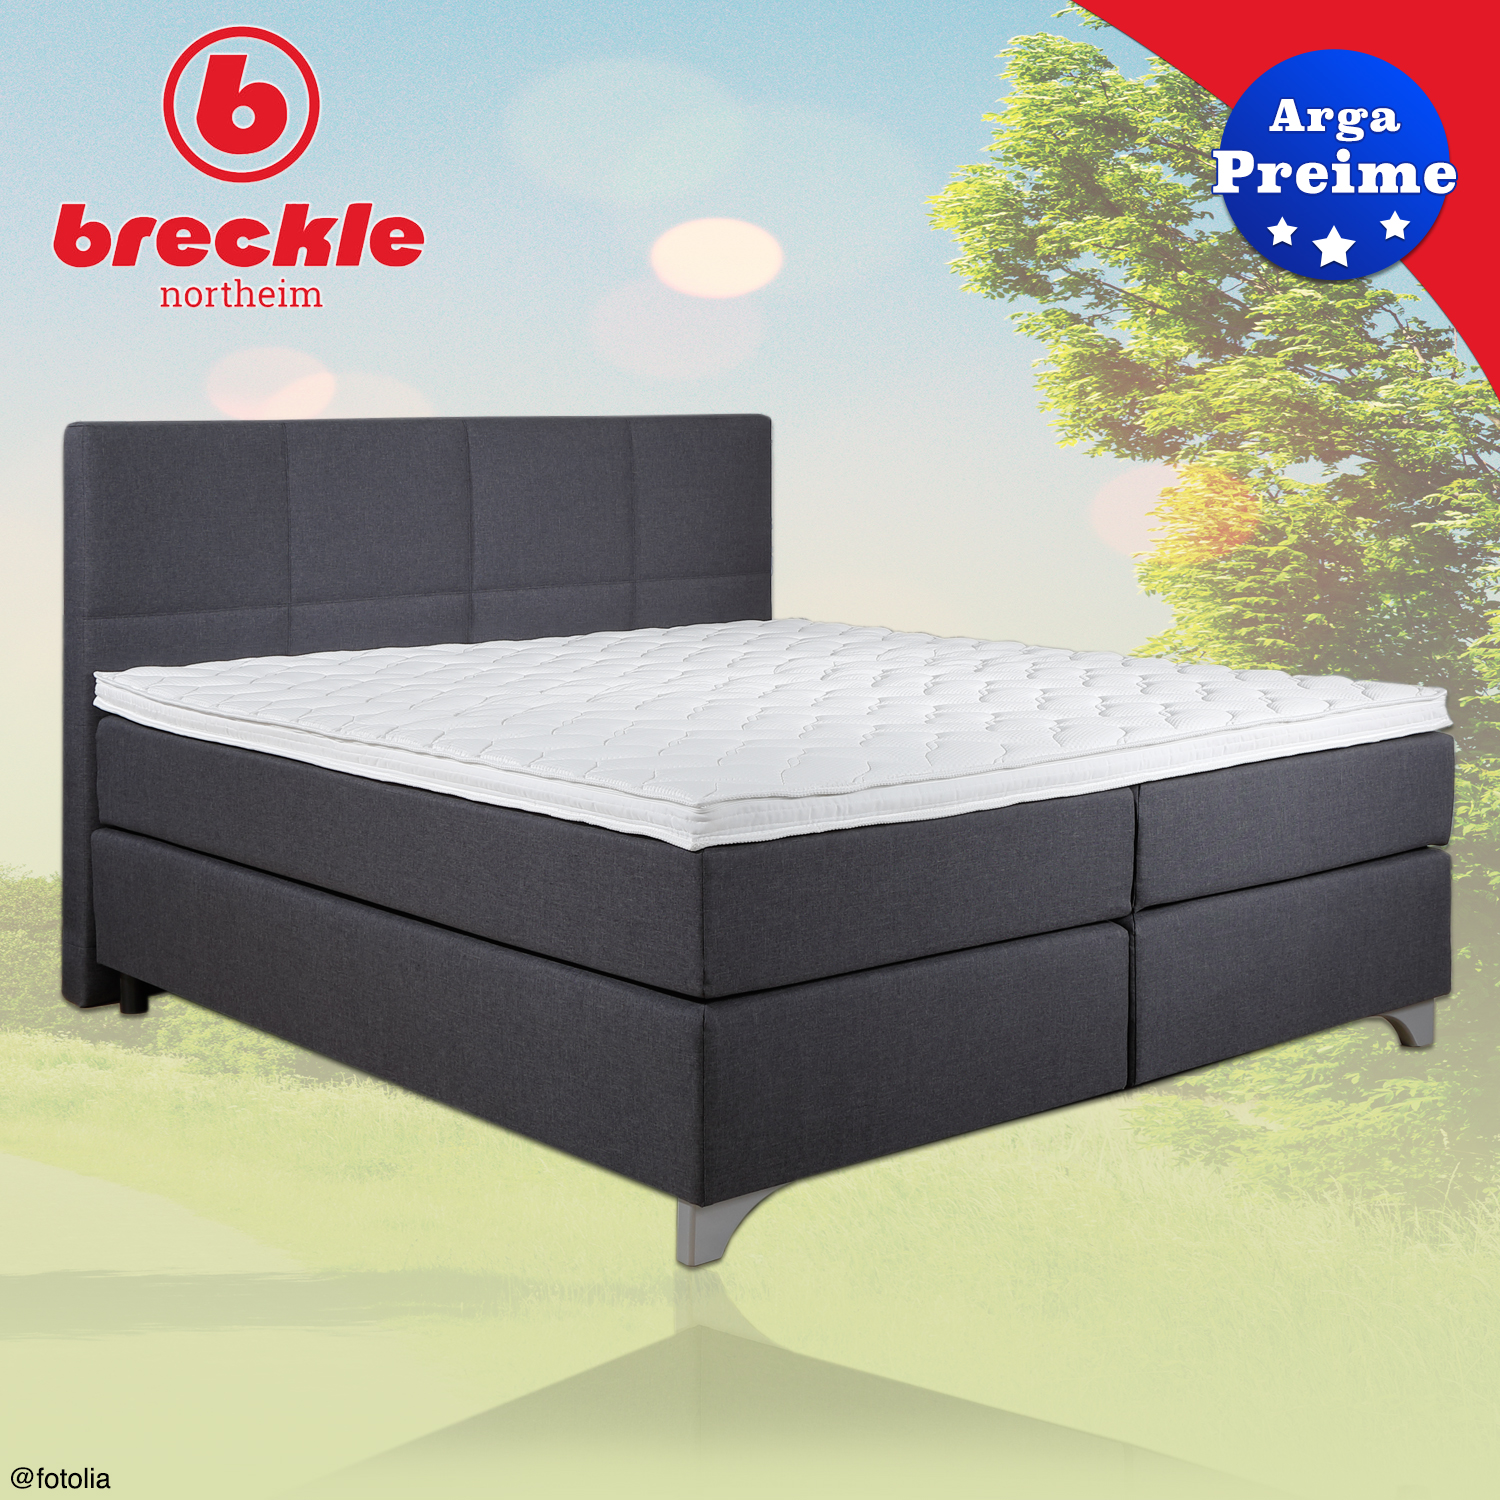 breckle boxspringbett arga preime 200x220 cm inkl topper 3700 gelschaum. Black Bedroom Furniture Sets. Home Design Ideas